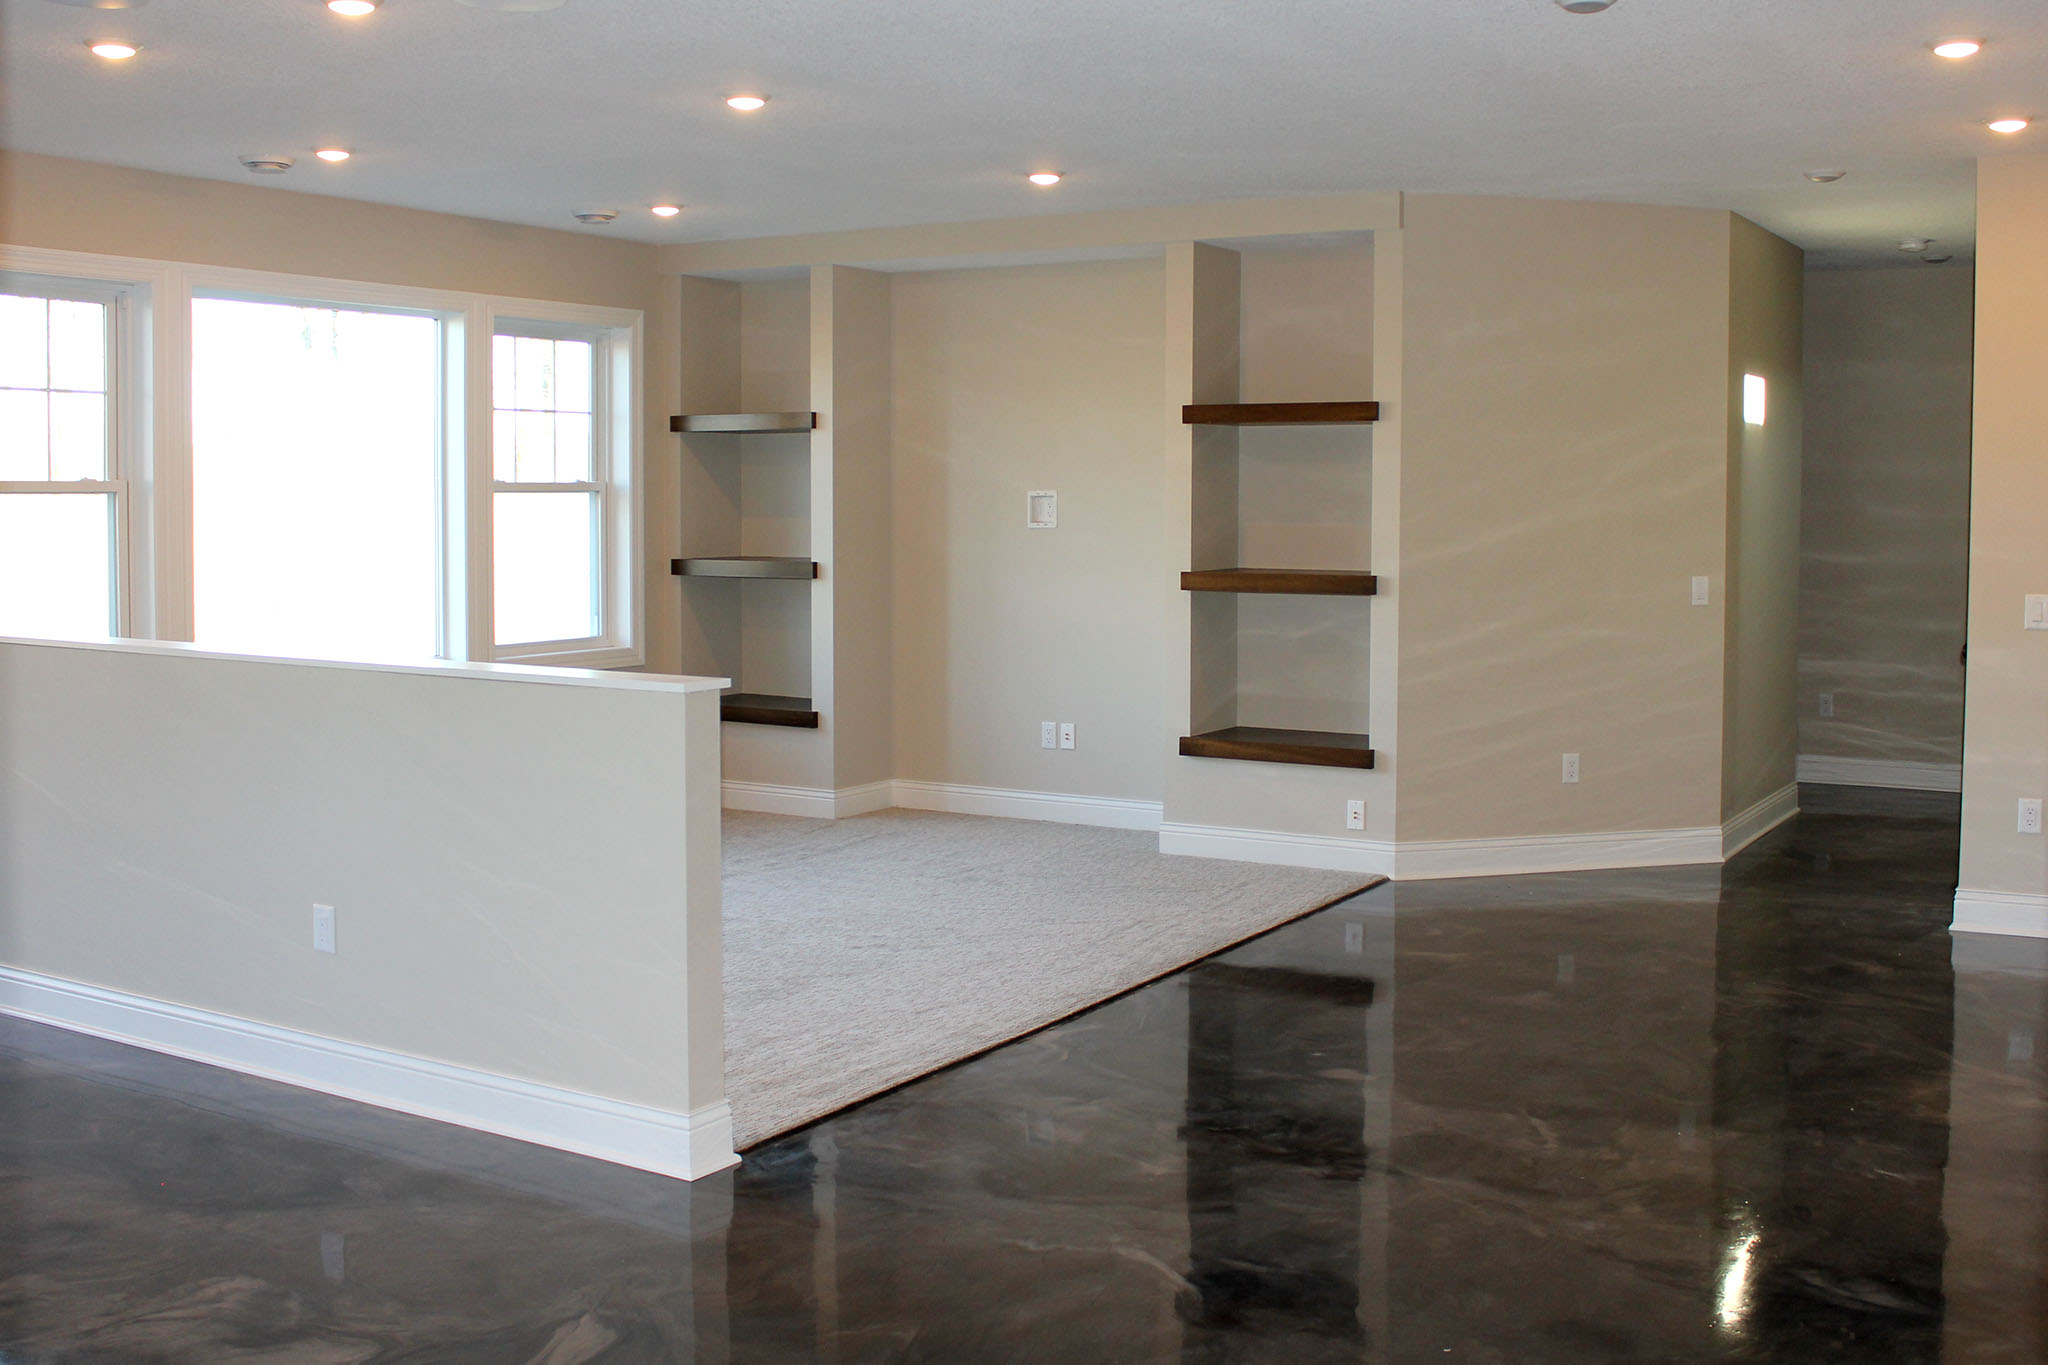 Basement family room with half wall divider, spot for TV/Entertainment console and floating wood shelves